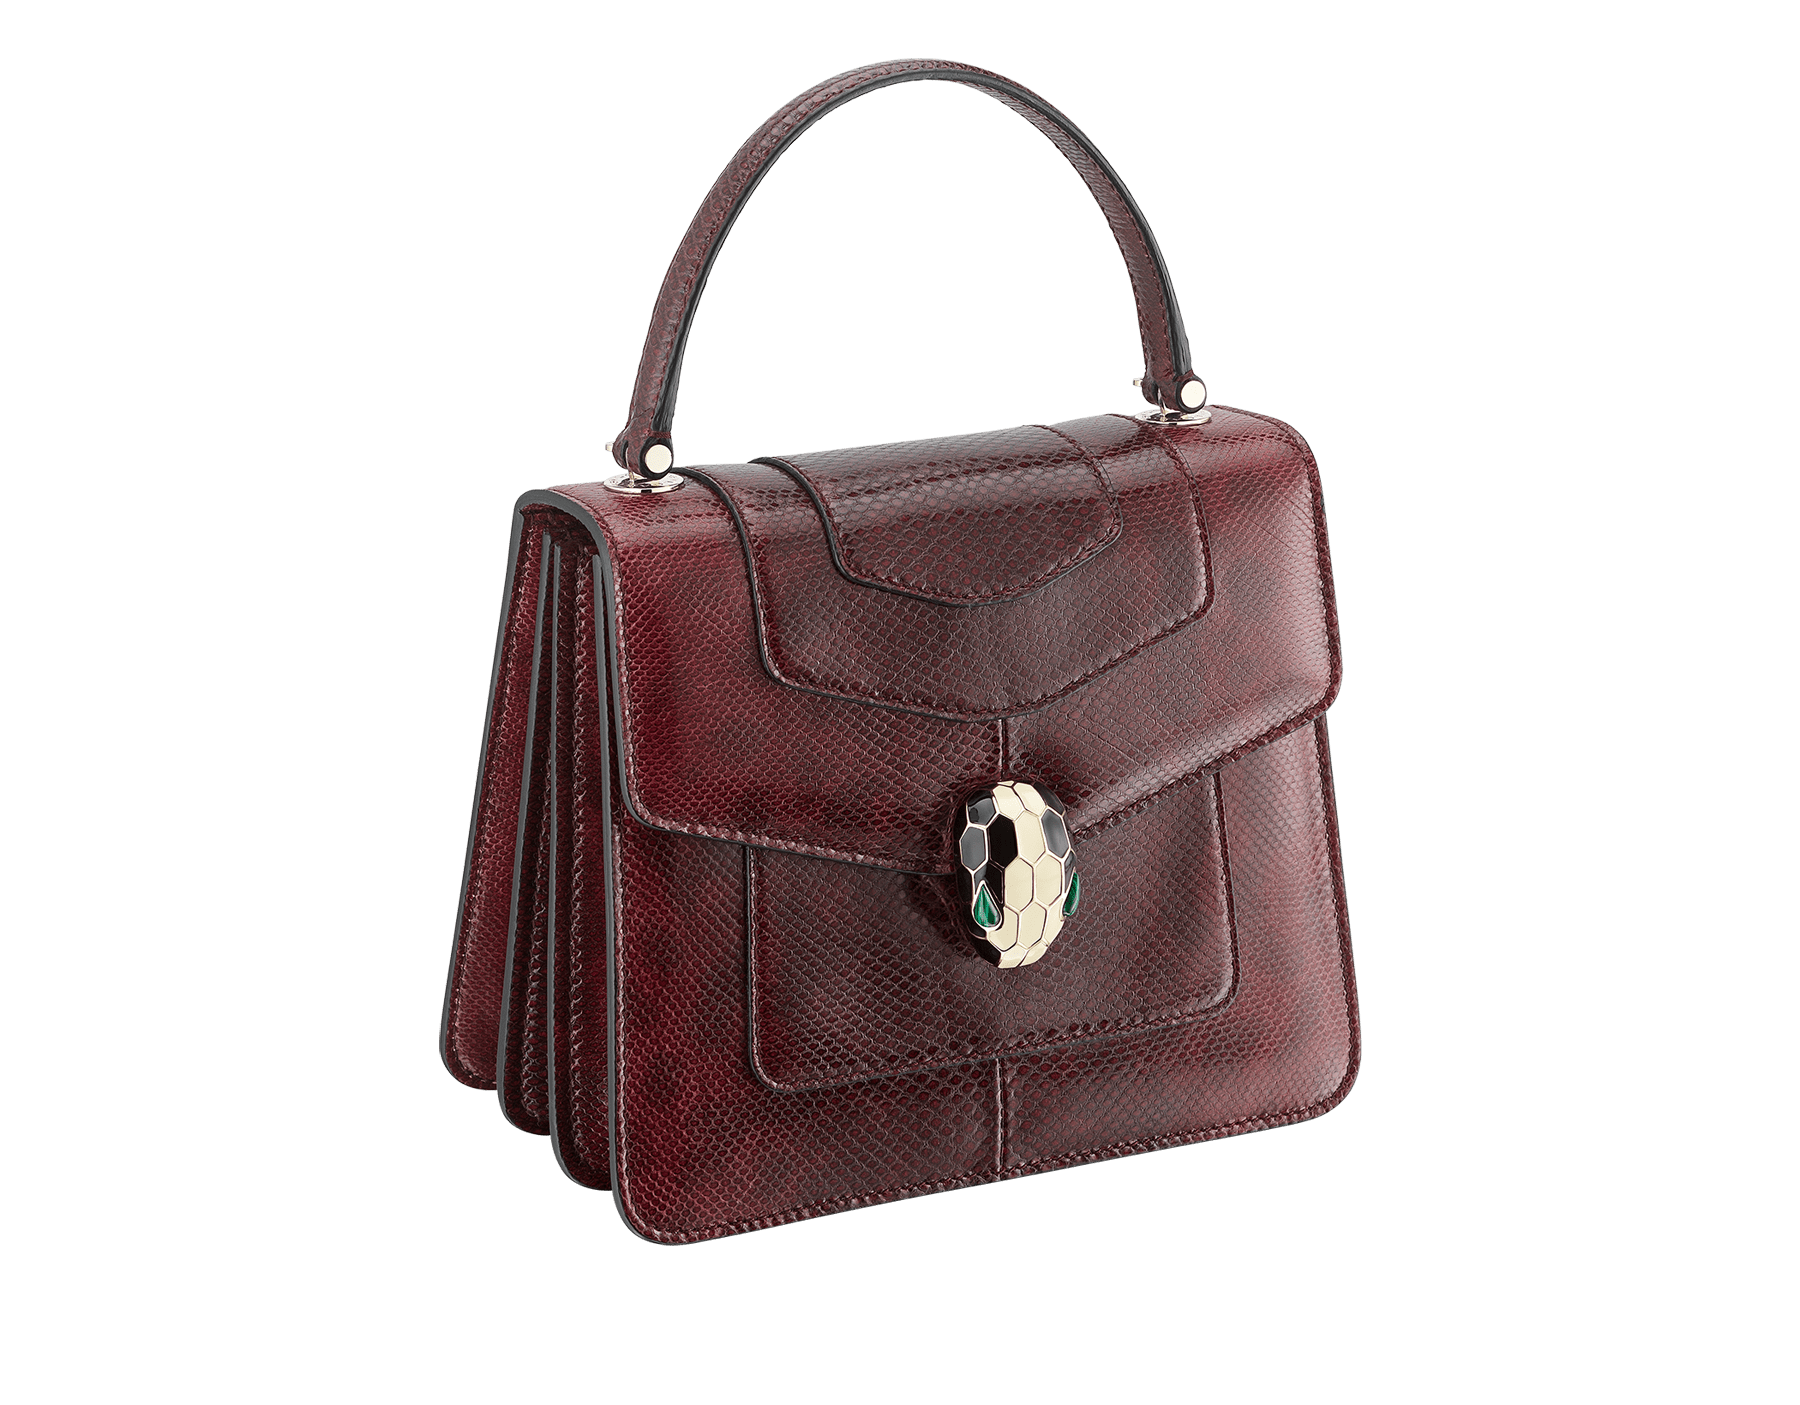 Flap cover bag Serpenti Forever in roman garnet shiny karung skin. Brass light gold plated hardware and tempting snake head closure in shiny black and white enamel, with eyes in green malachite. 286198 image 2